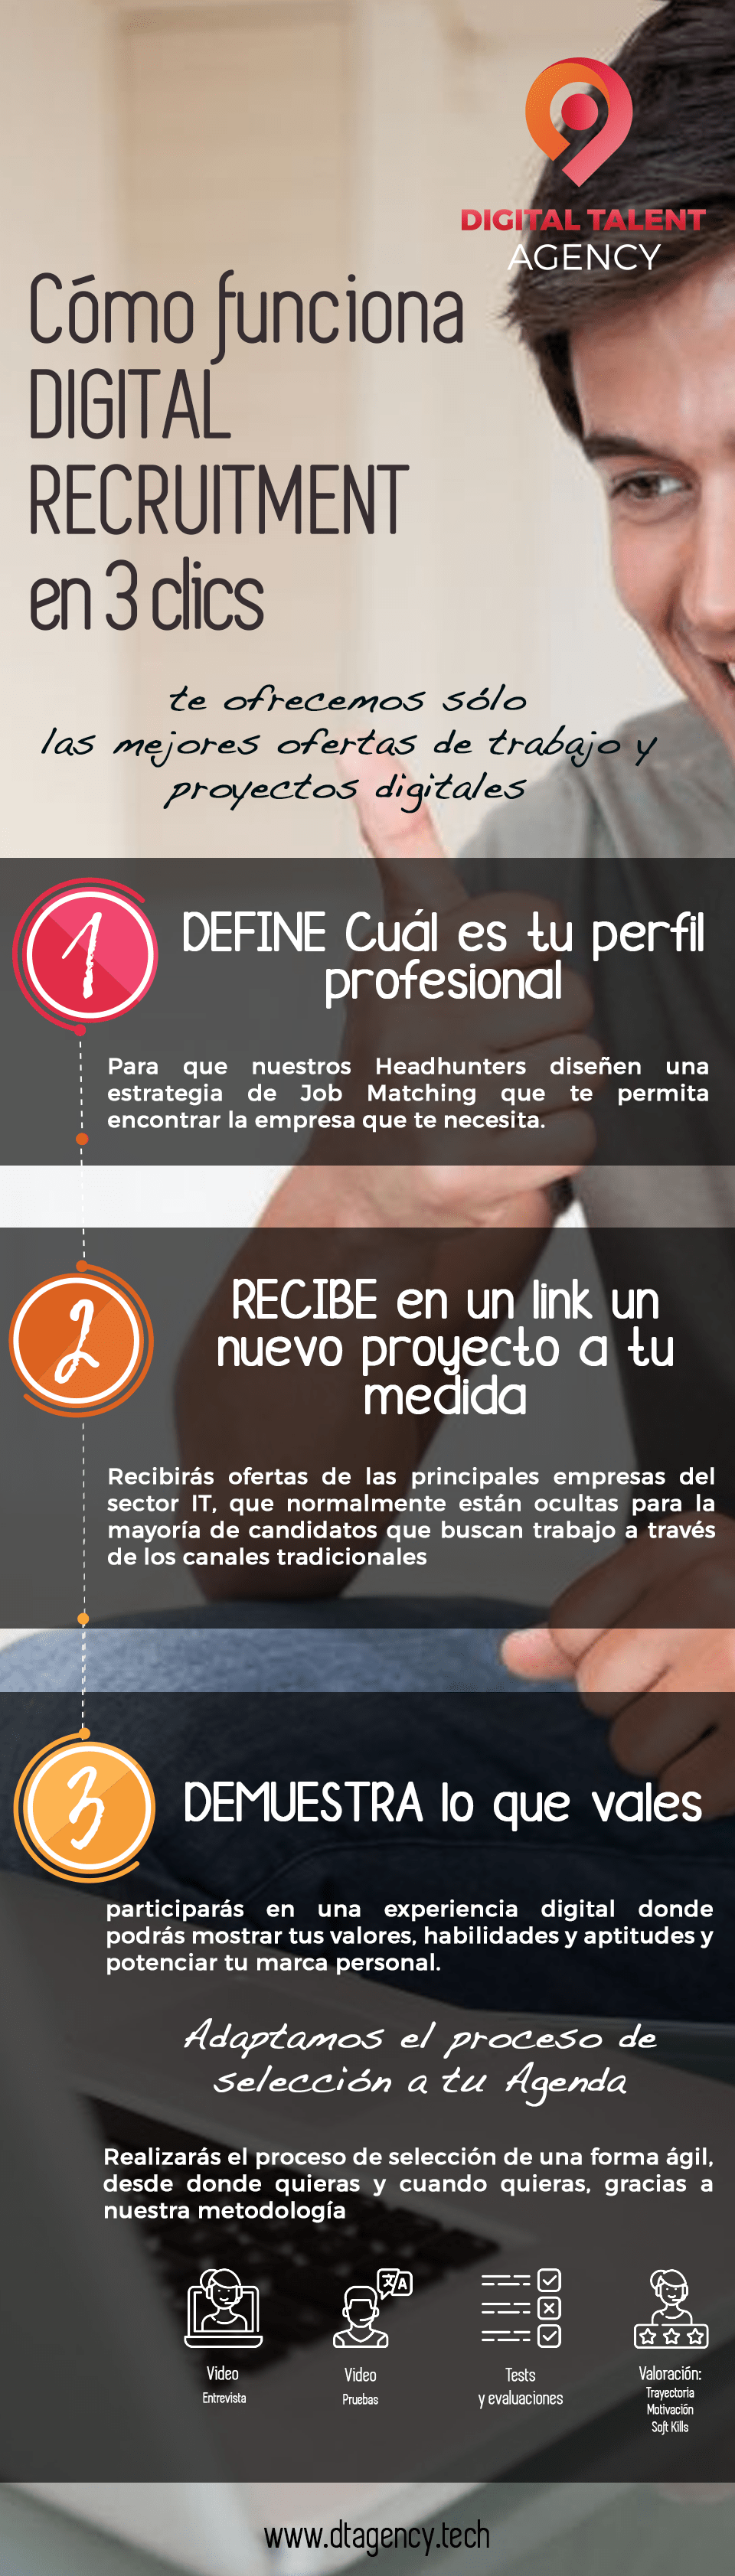 Digital Recruitment candidatos